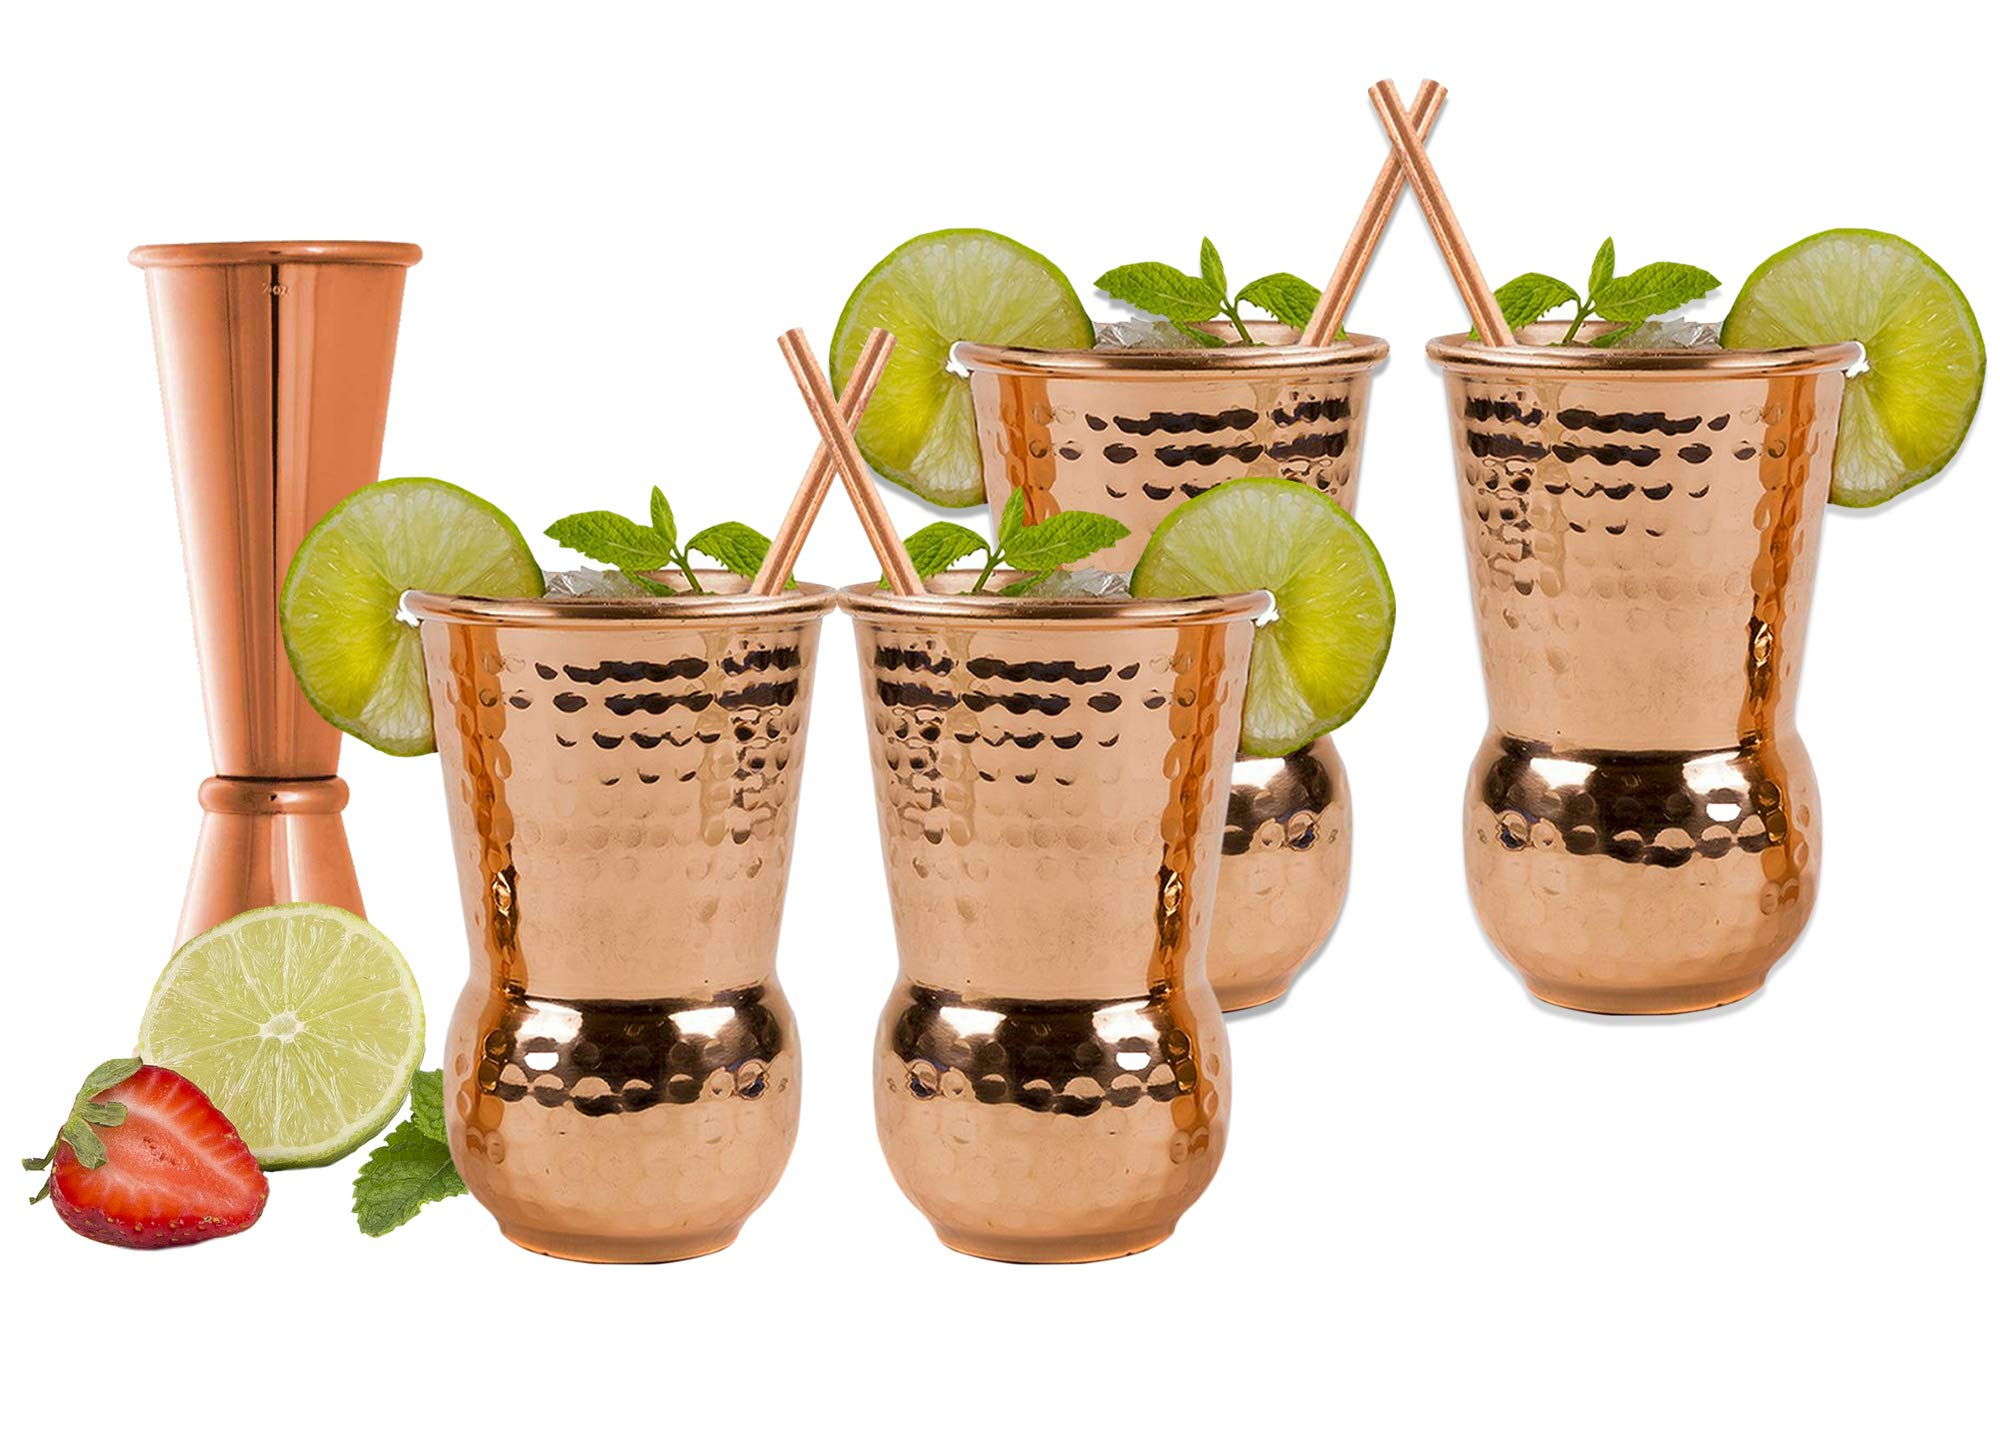 EXTRA THICK HEFTY 20 Gauge Moscow Mule Copper Mugs by Eximius Power | 100% Pure Food Safe Copper Drinking Cups |16 oz Hammered Design Handcrafted Tumblers | | Bonus Jigger and 4 Straws (4) by Eximius Power